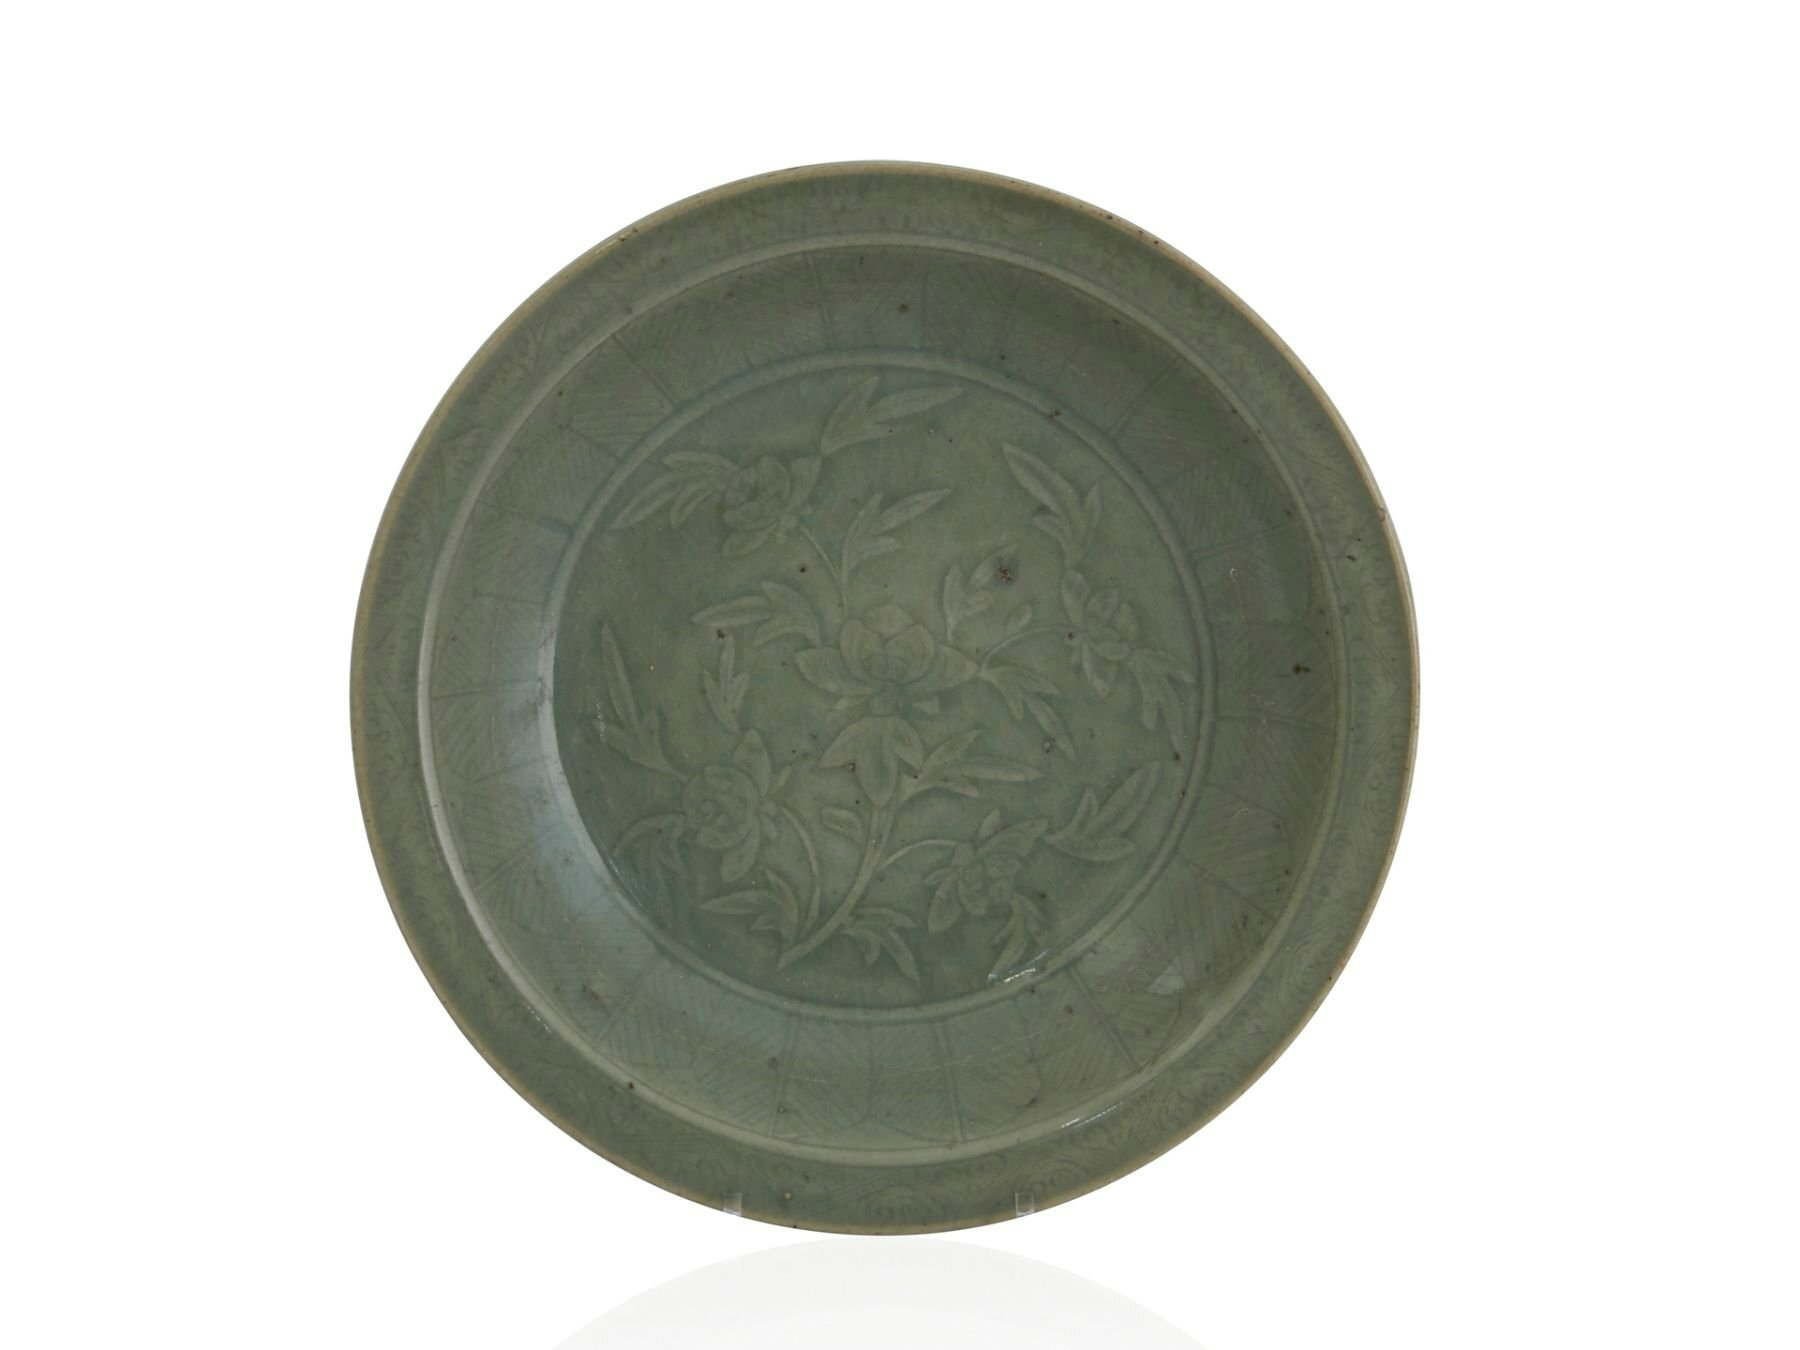 A large Longquan celadon dish, China, Ming dynasty, 15th-16th century